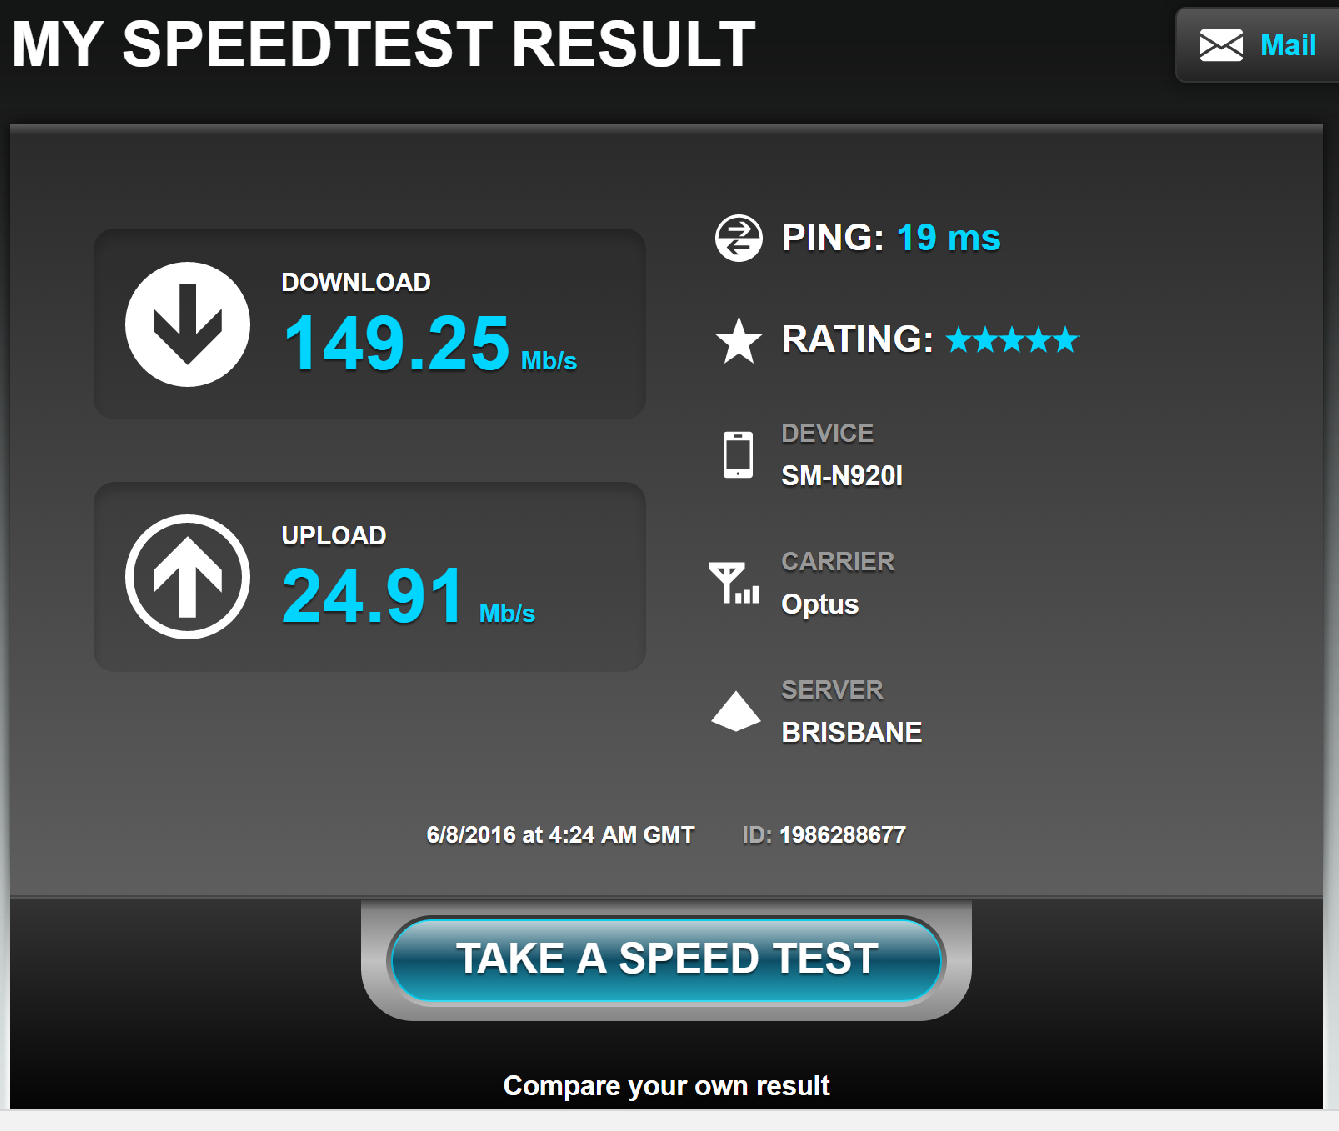 mobile broadband speed test vs nbn